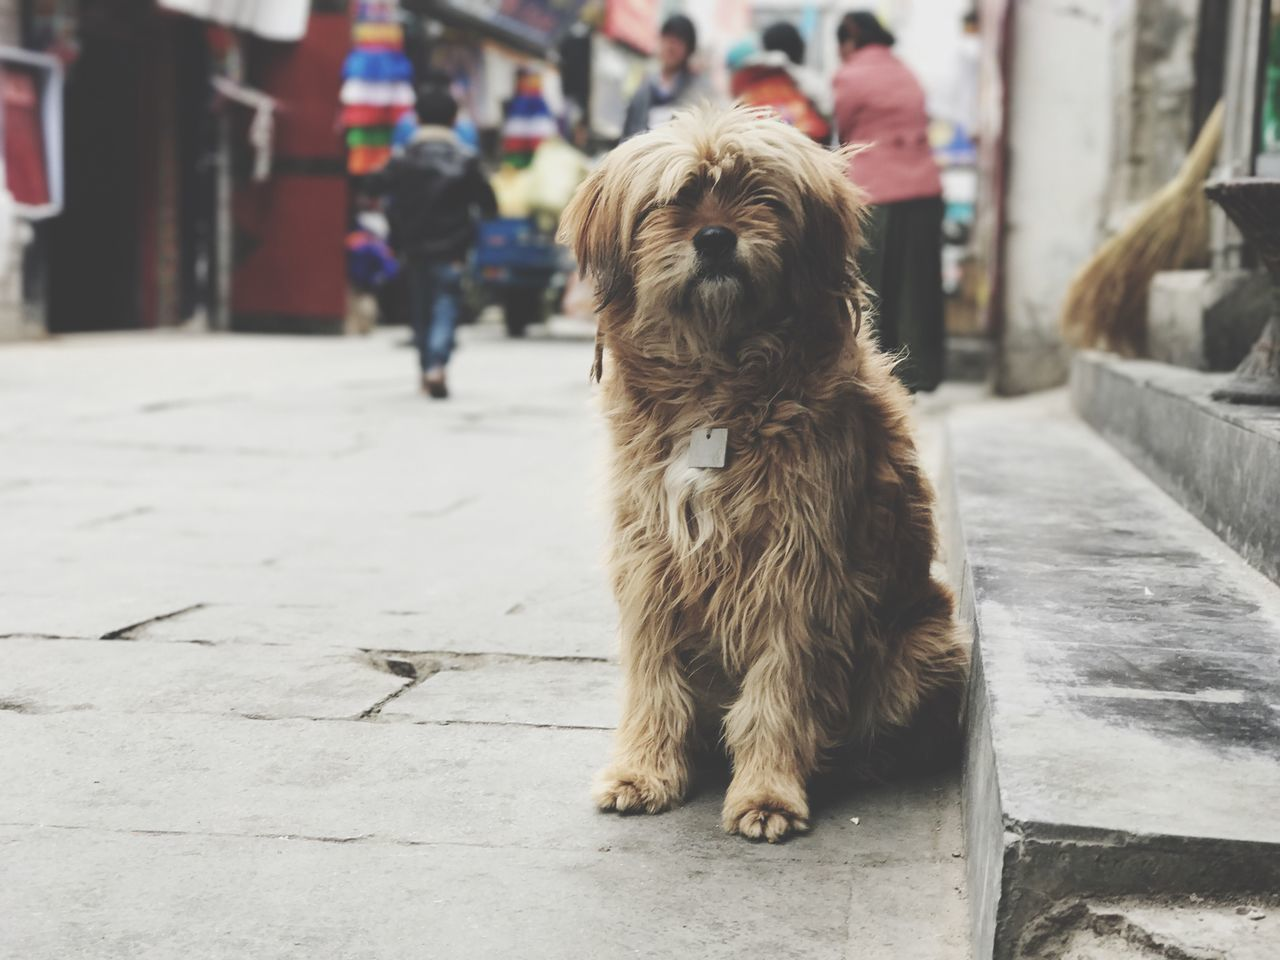 EyeEm Selects Dog One Animal Pets Animal Themes Domestic Animals Focus On Foreground Mammal Day Outdoors Real People Full Length Close-up